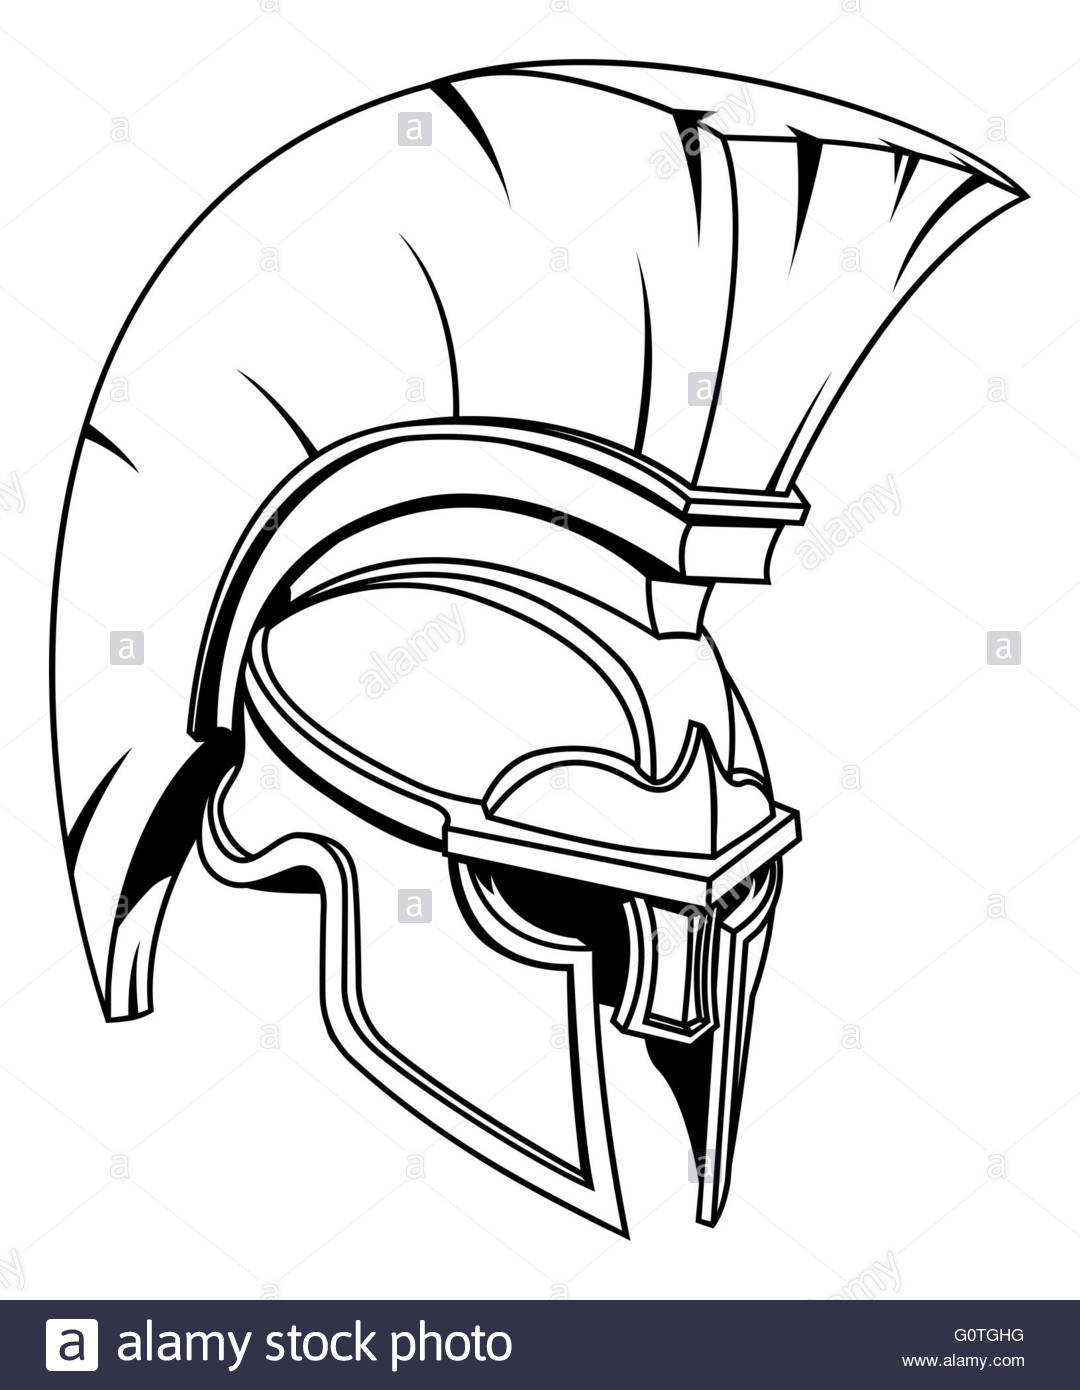 1080x1390 A Spartan, Trojan Or Roman Gladiator Greek Style Warrior Helmet